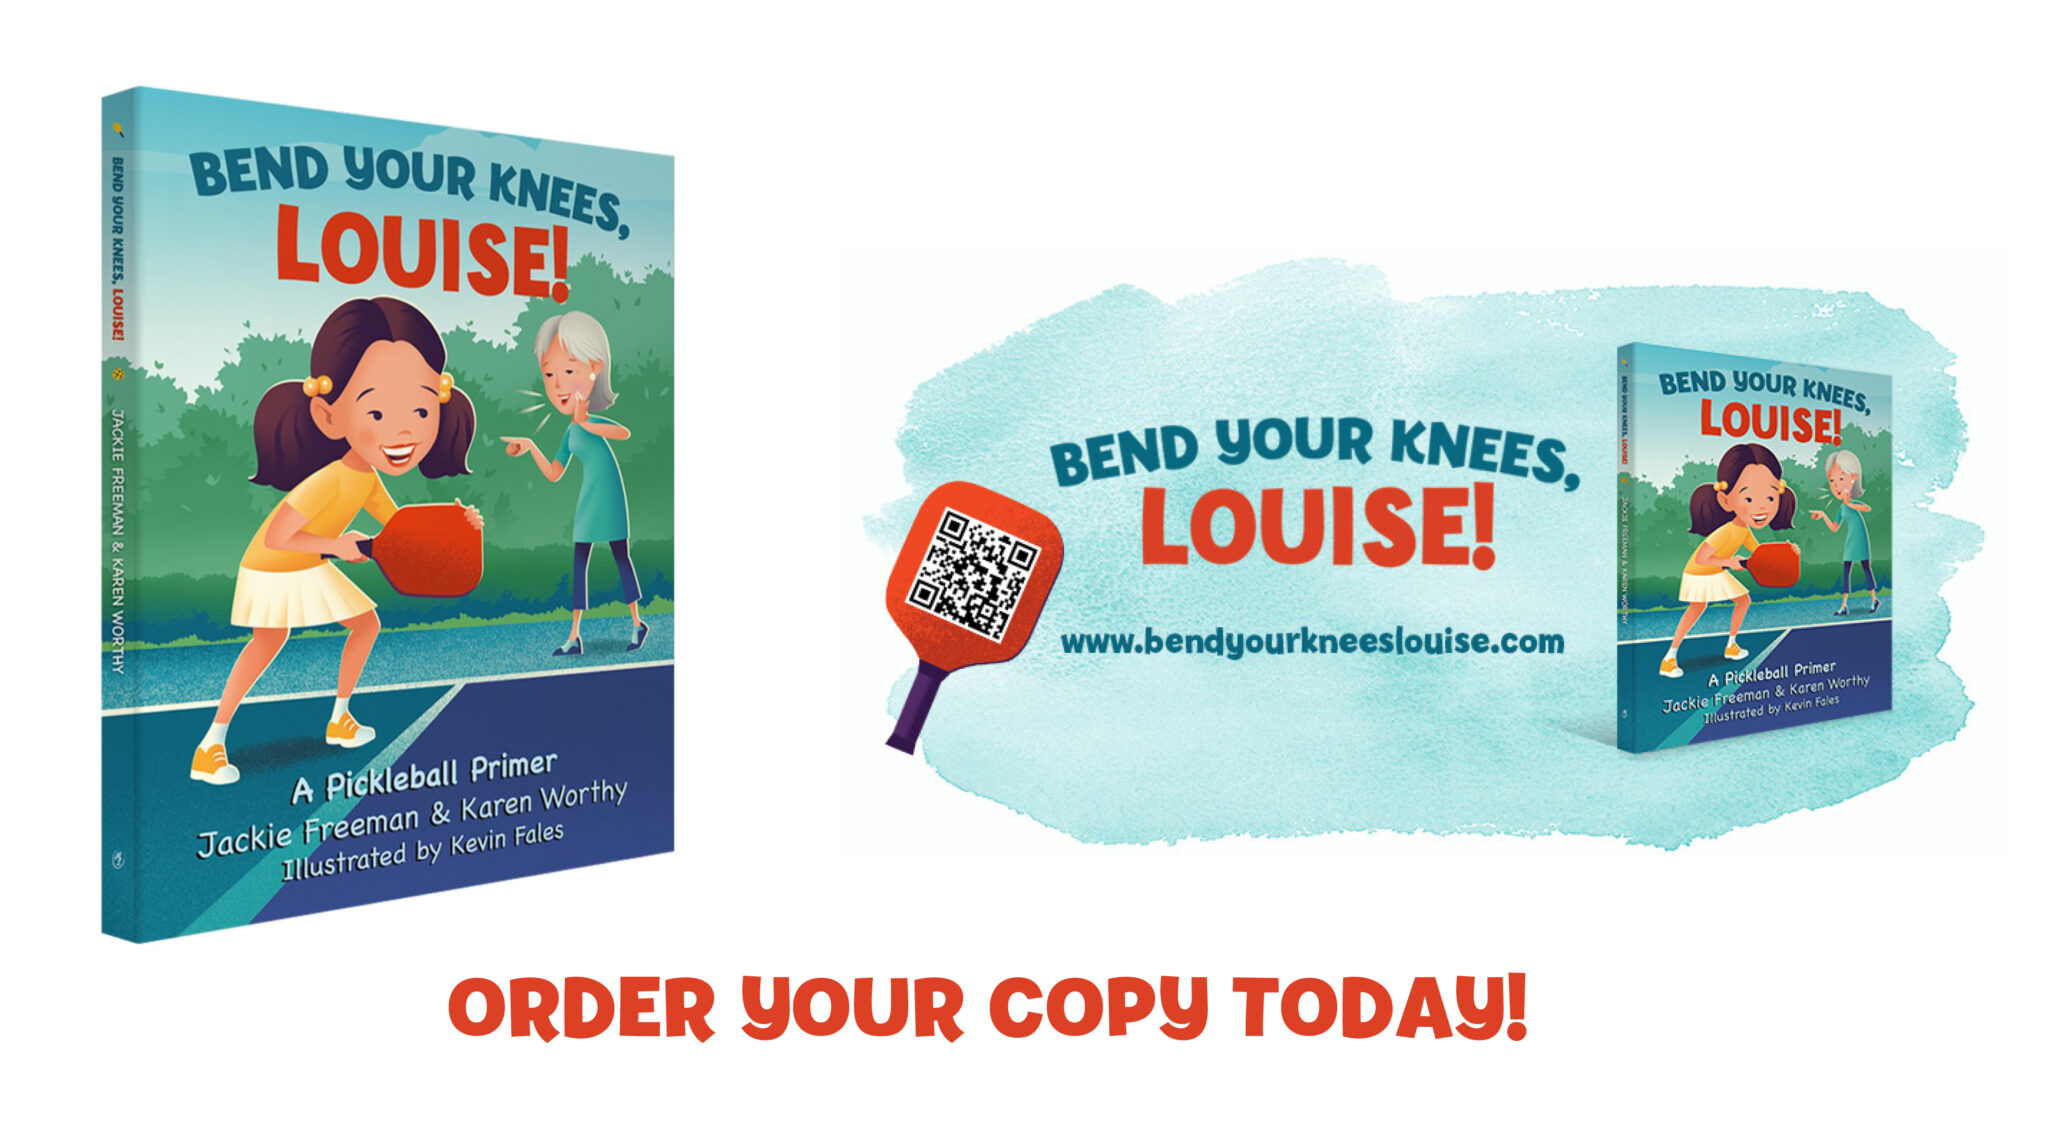 XXXXX_BEND-YOUR-KNEES-LOUISE_POSTER.indd